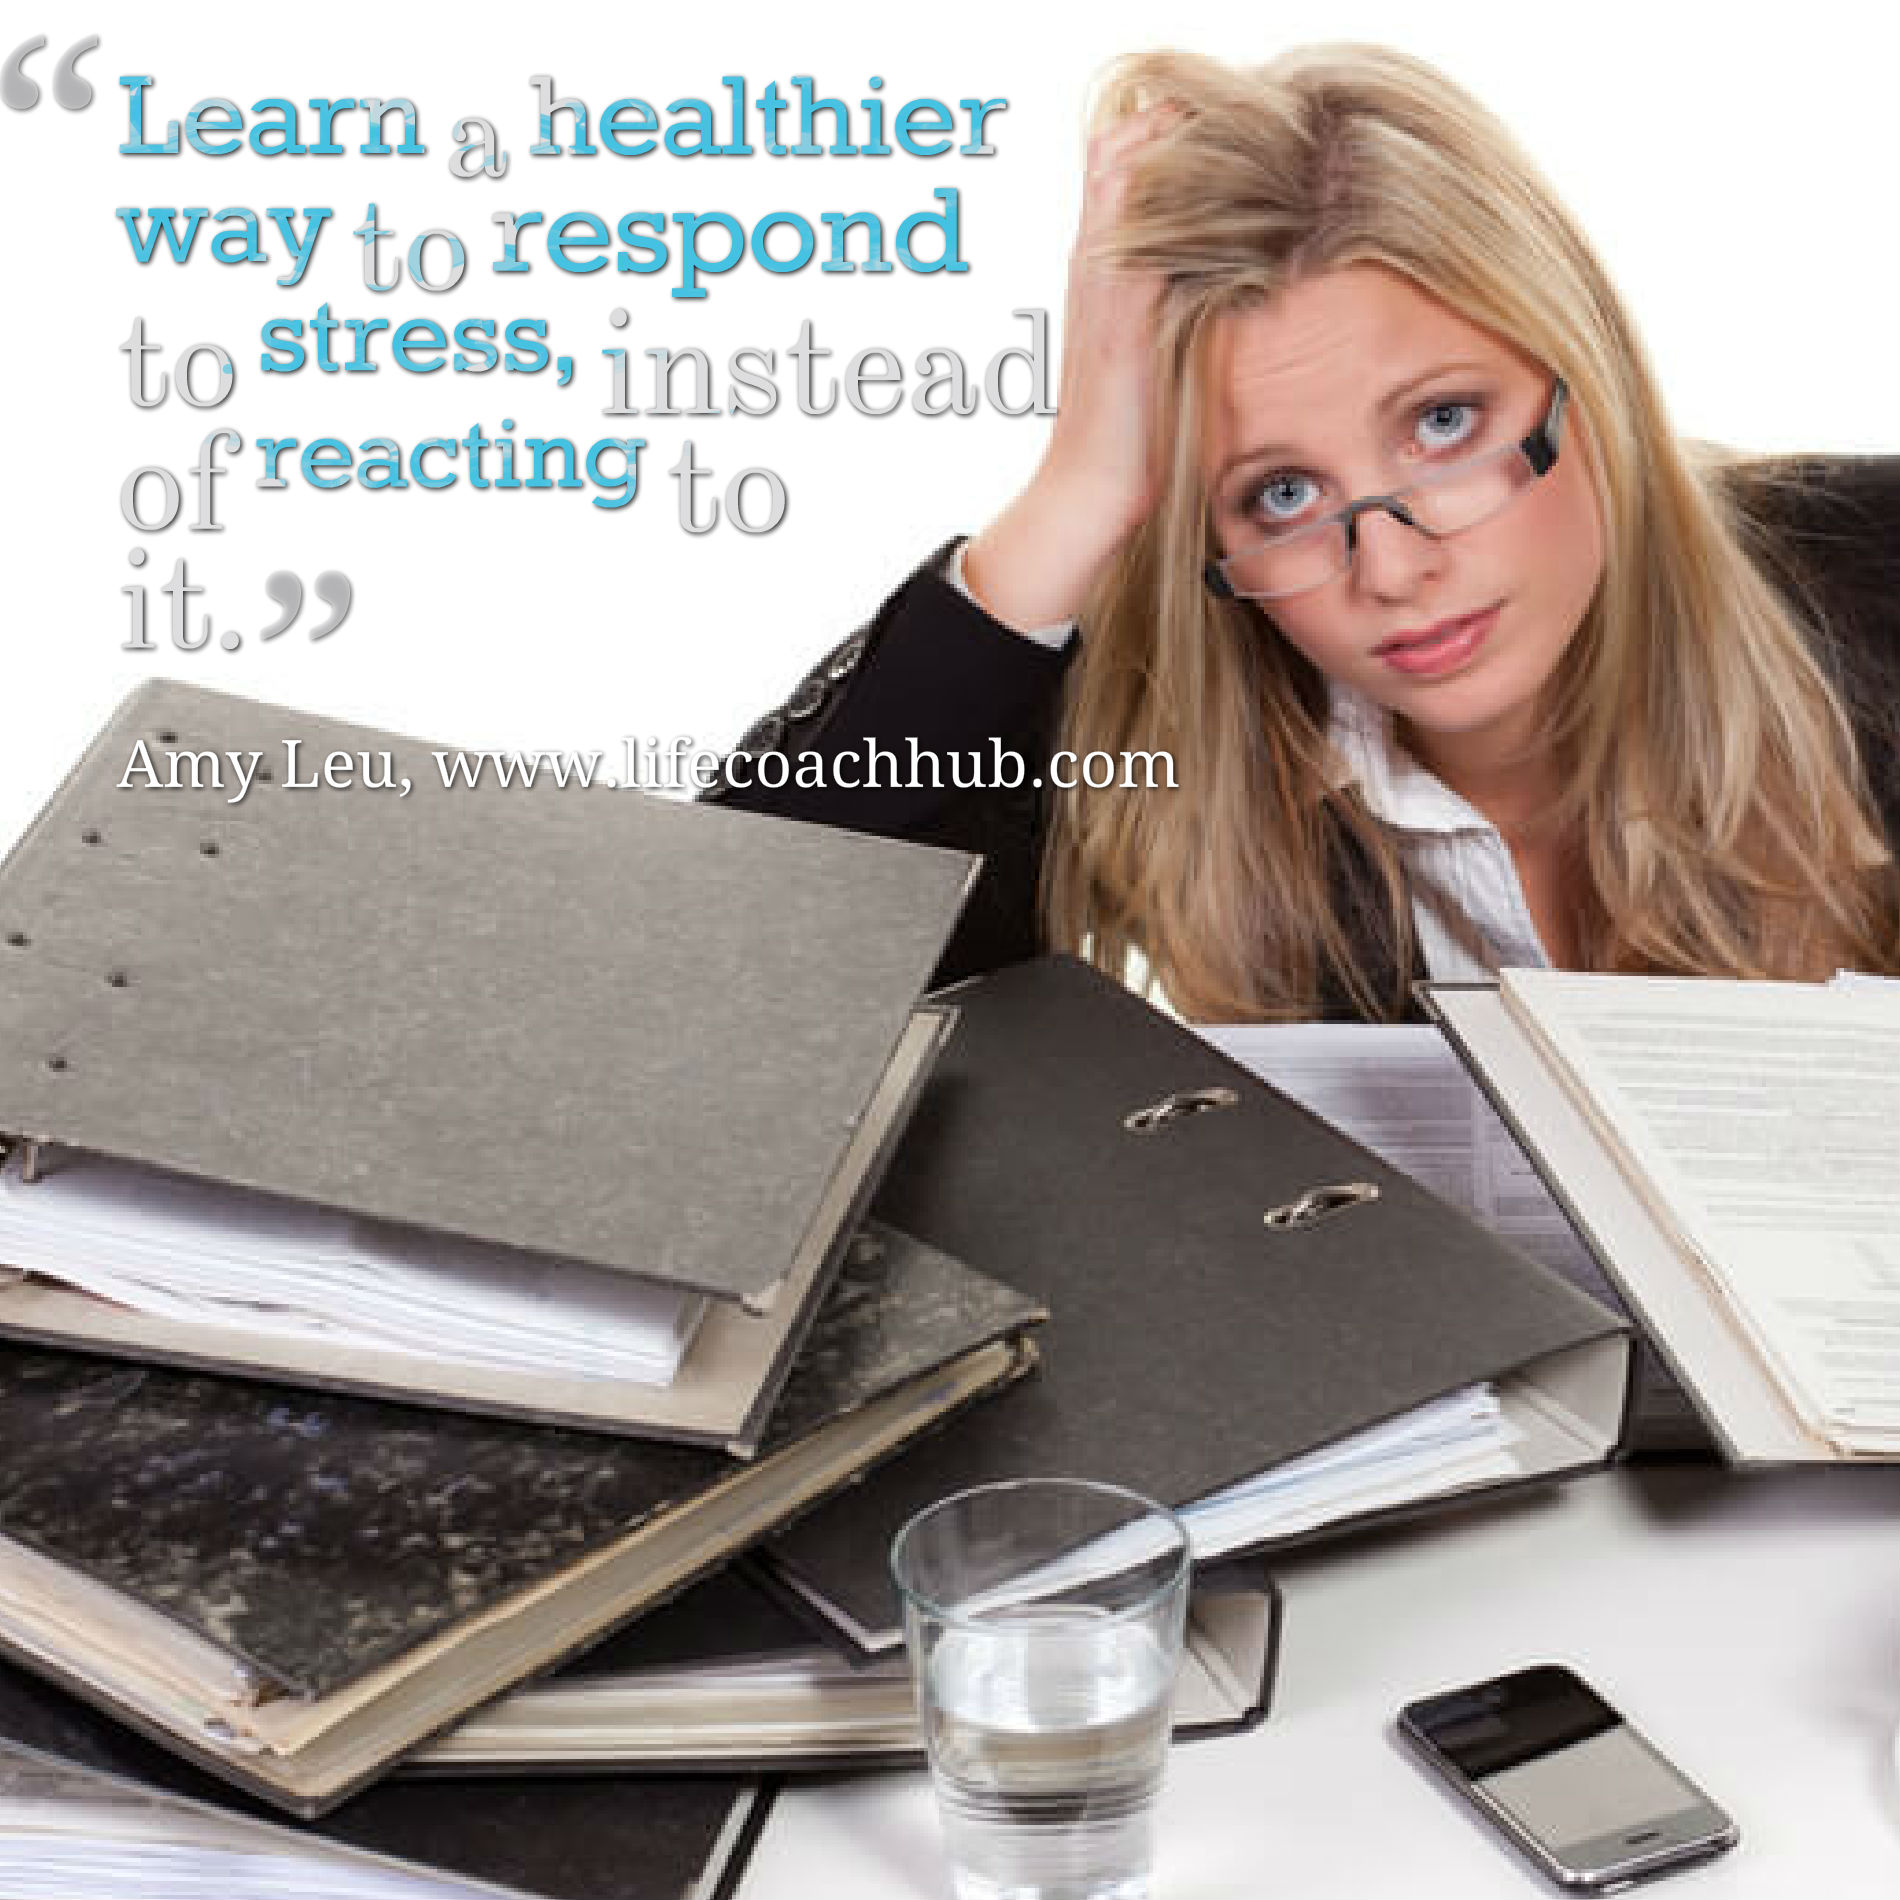 Learn a Healthier Way to Respond to Stress